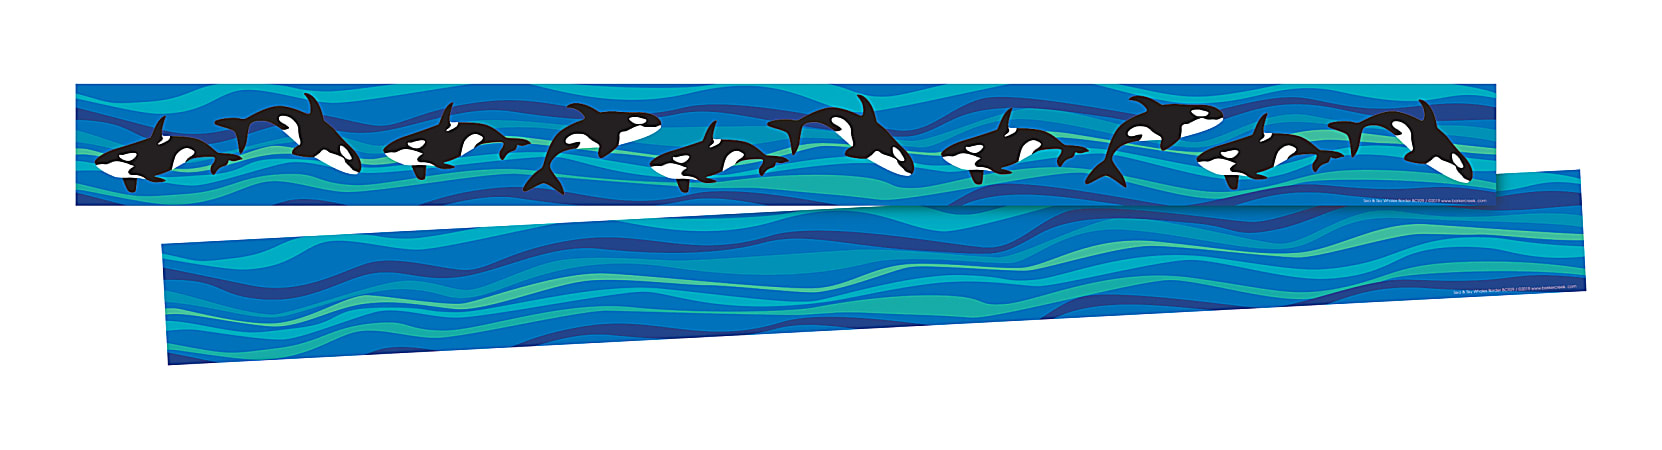 """Barker Creek Double-Sided Borders, 3"""" x 35"""", Sea & Sky Whales, 12 Strips Per Pack, Set Of 2 Packs"""